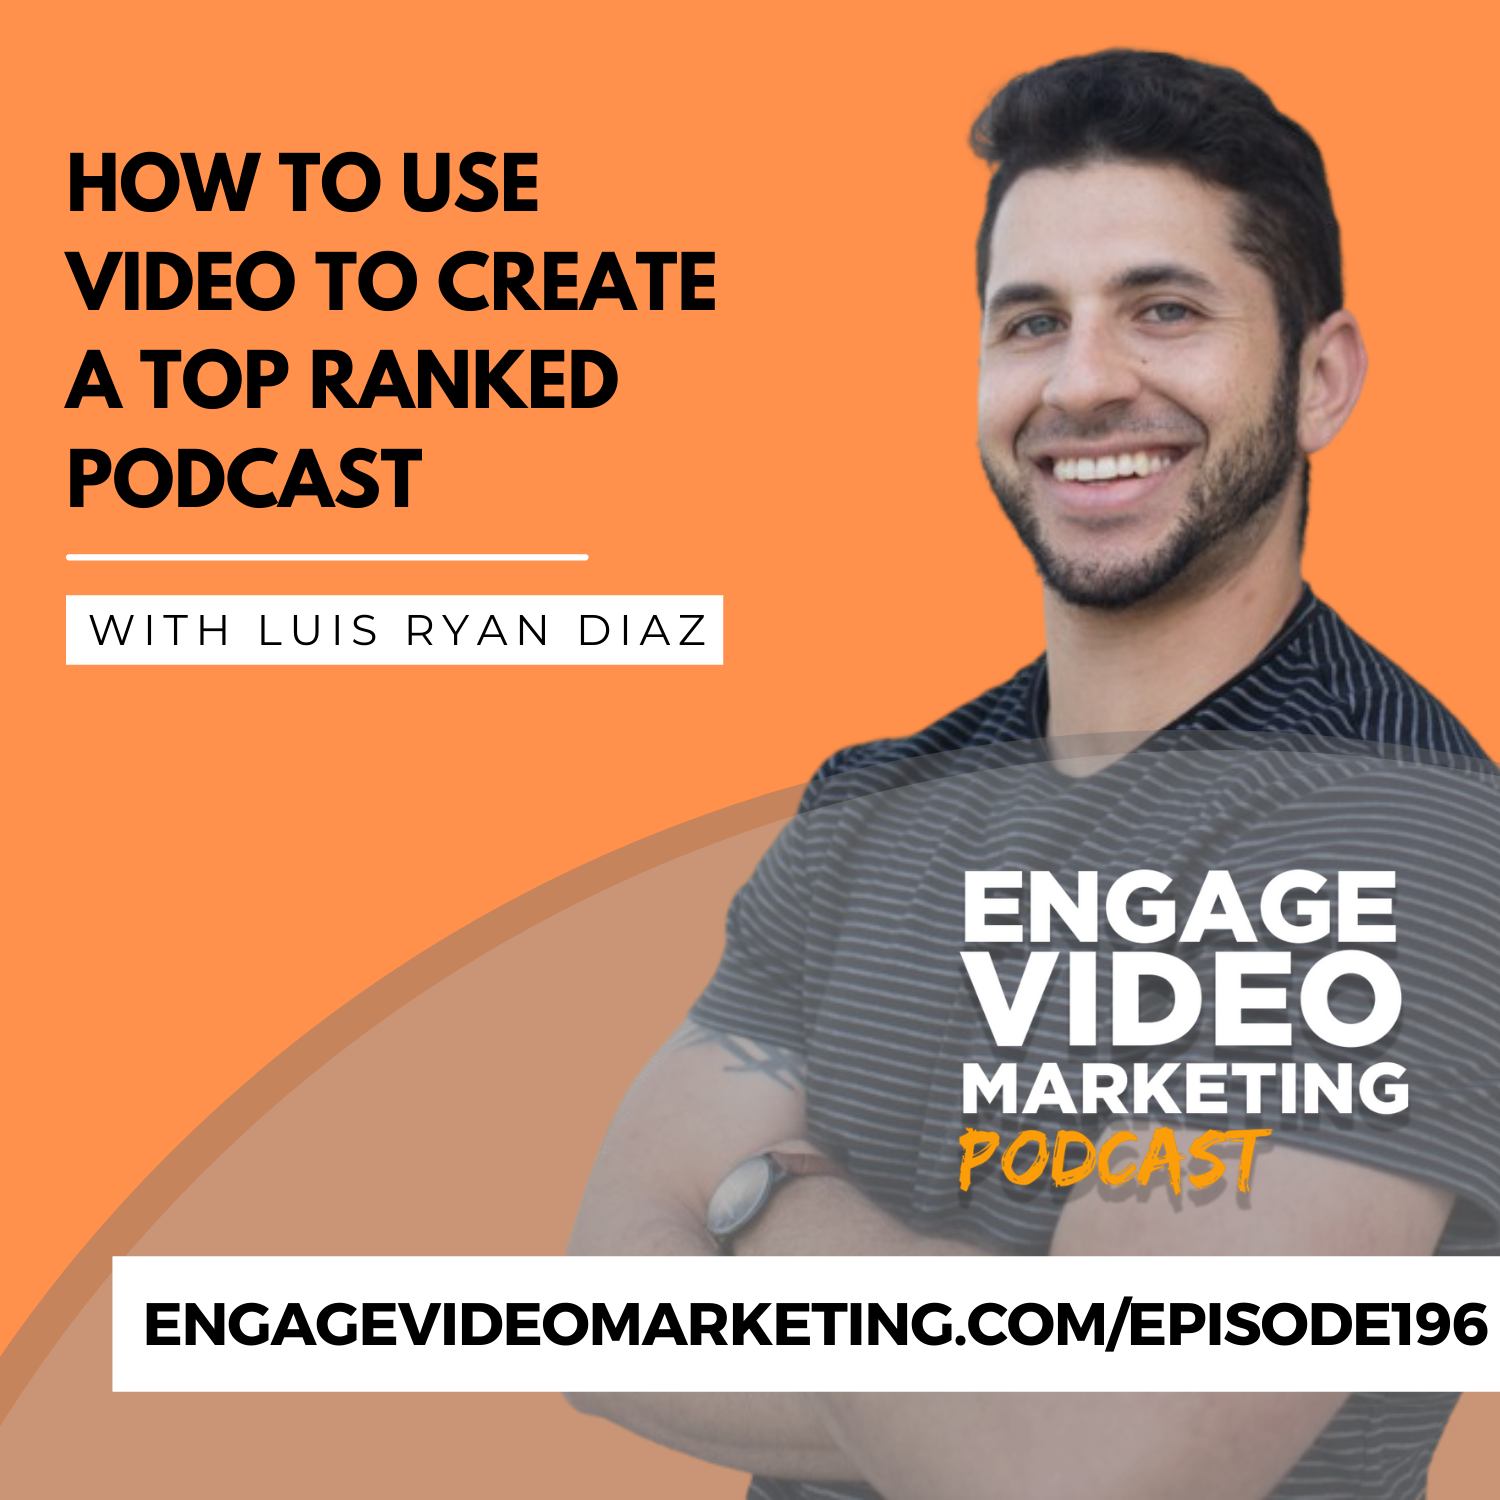 How to Use Video to Create a Top Ranked Podcast with Luis Ryan Diaz